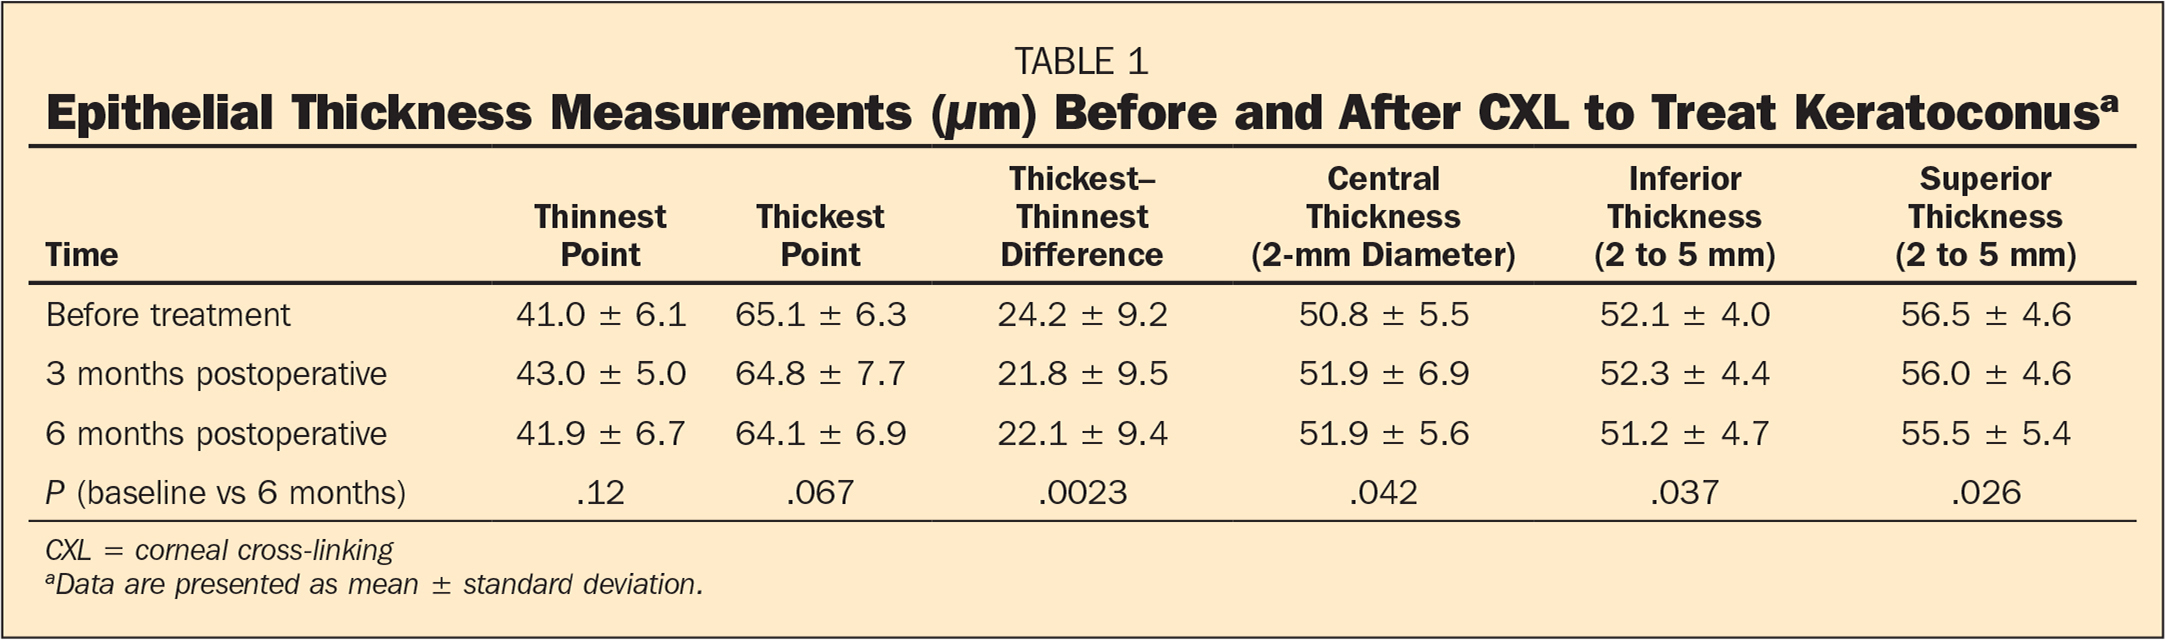 Epithelial Thickness Measurements (μm) Before and After CXL to Treat Keratoconusa